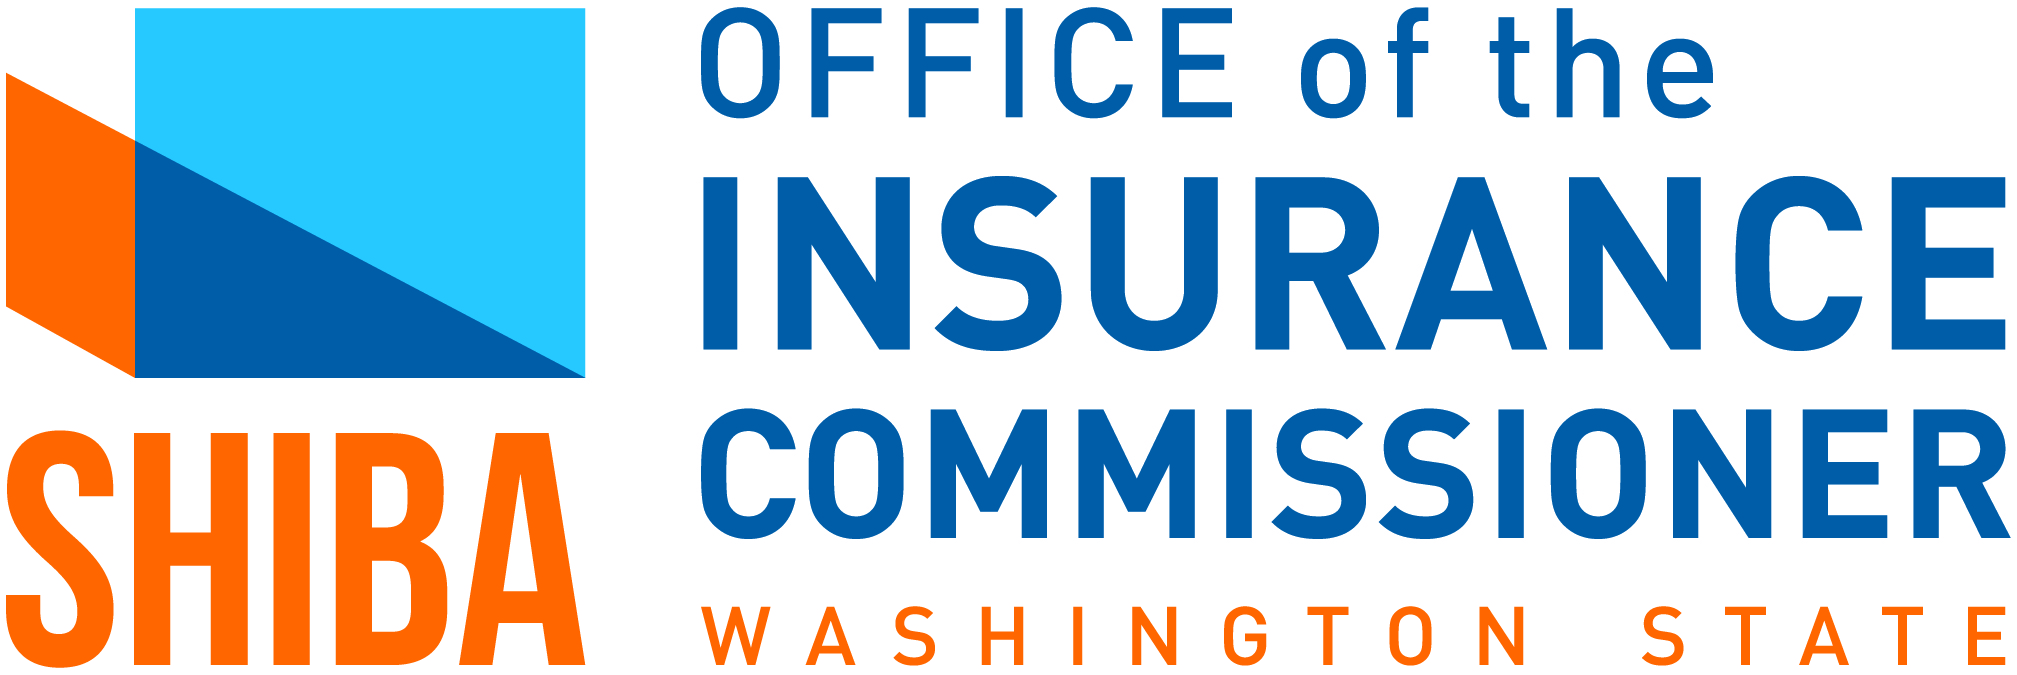 Logo: SHIBA, Office of the Insurance Commissioner, Washington State